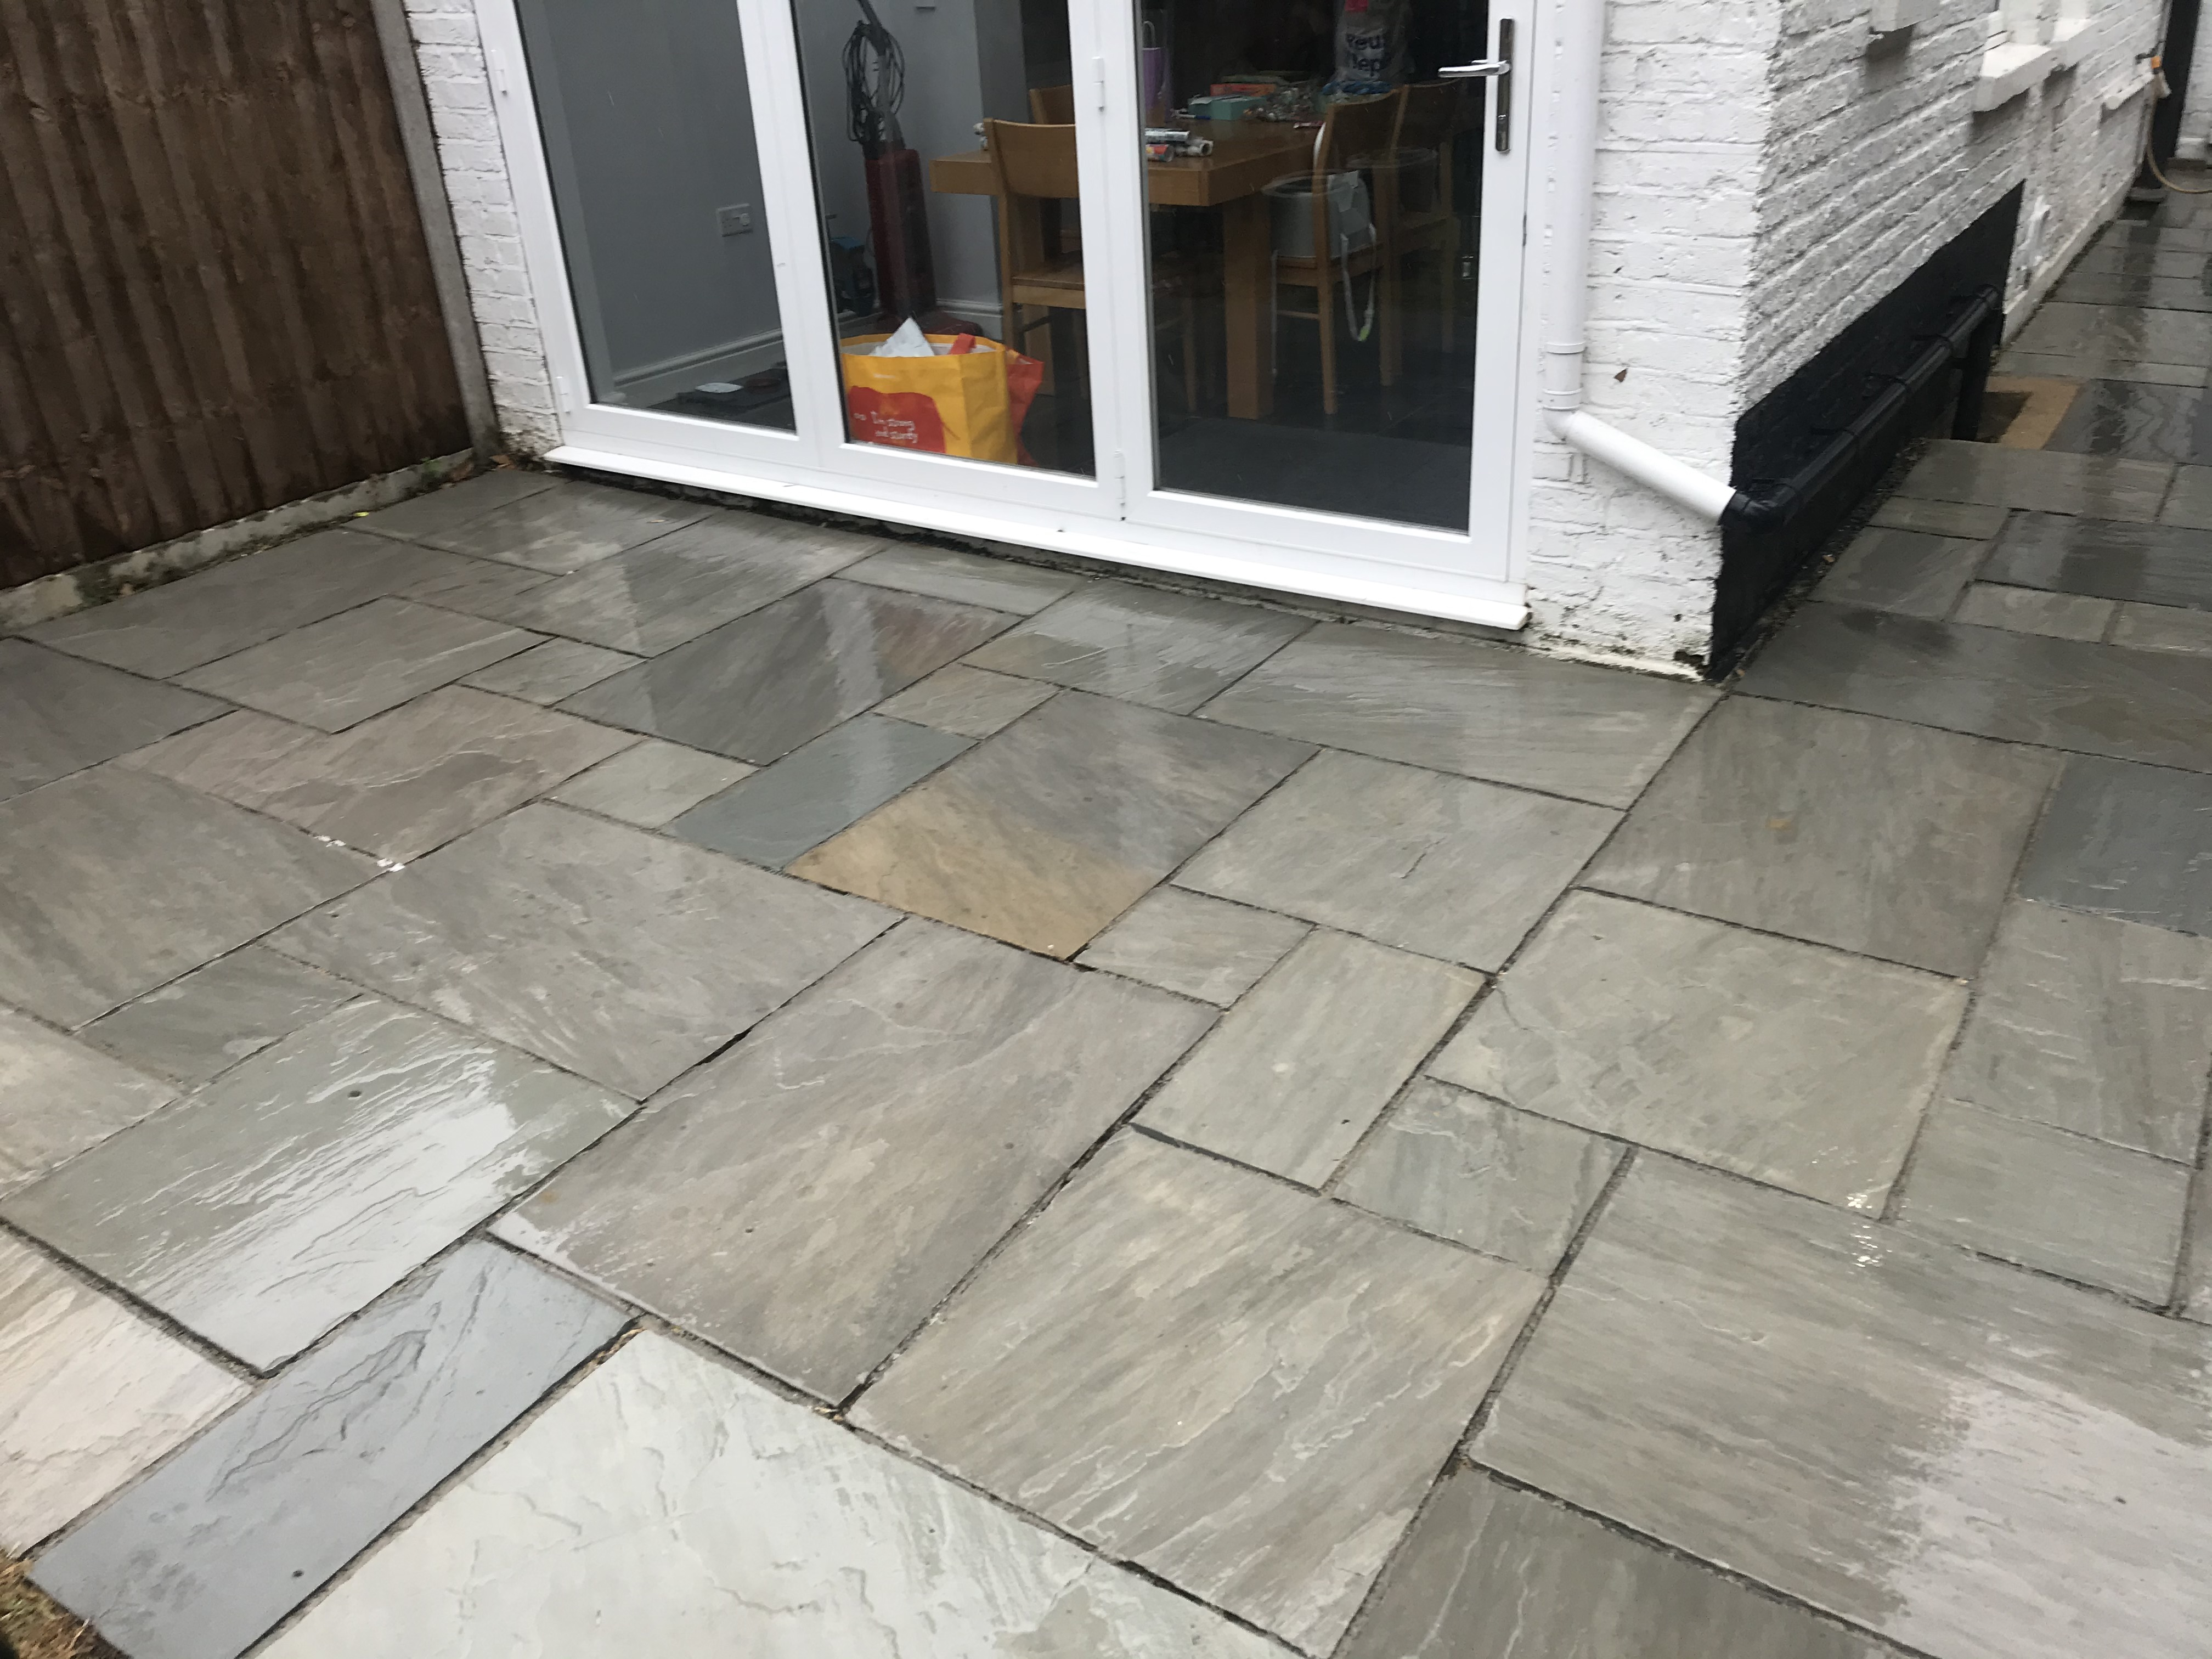 beckenham jet washing